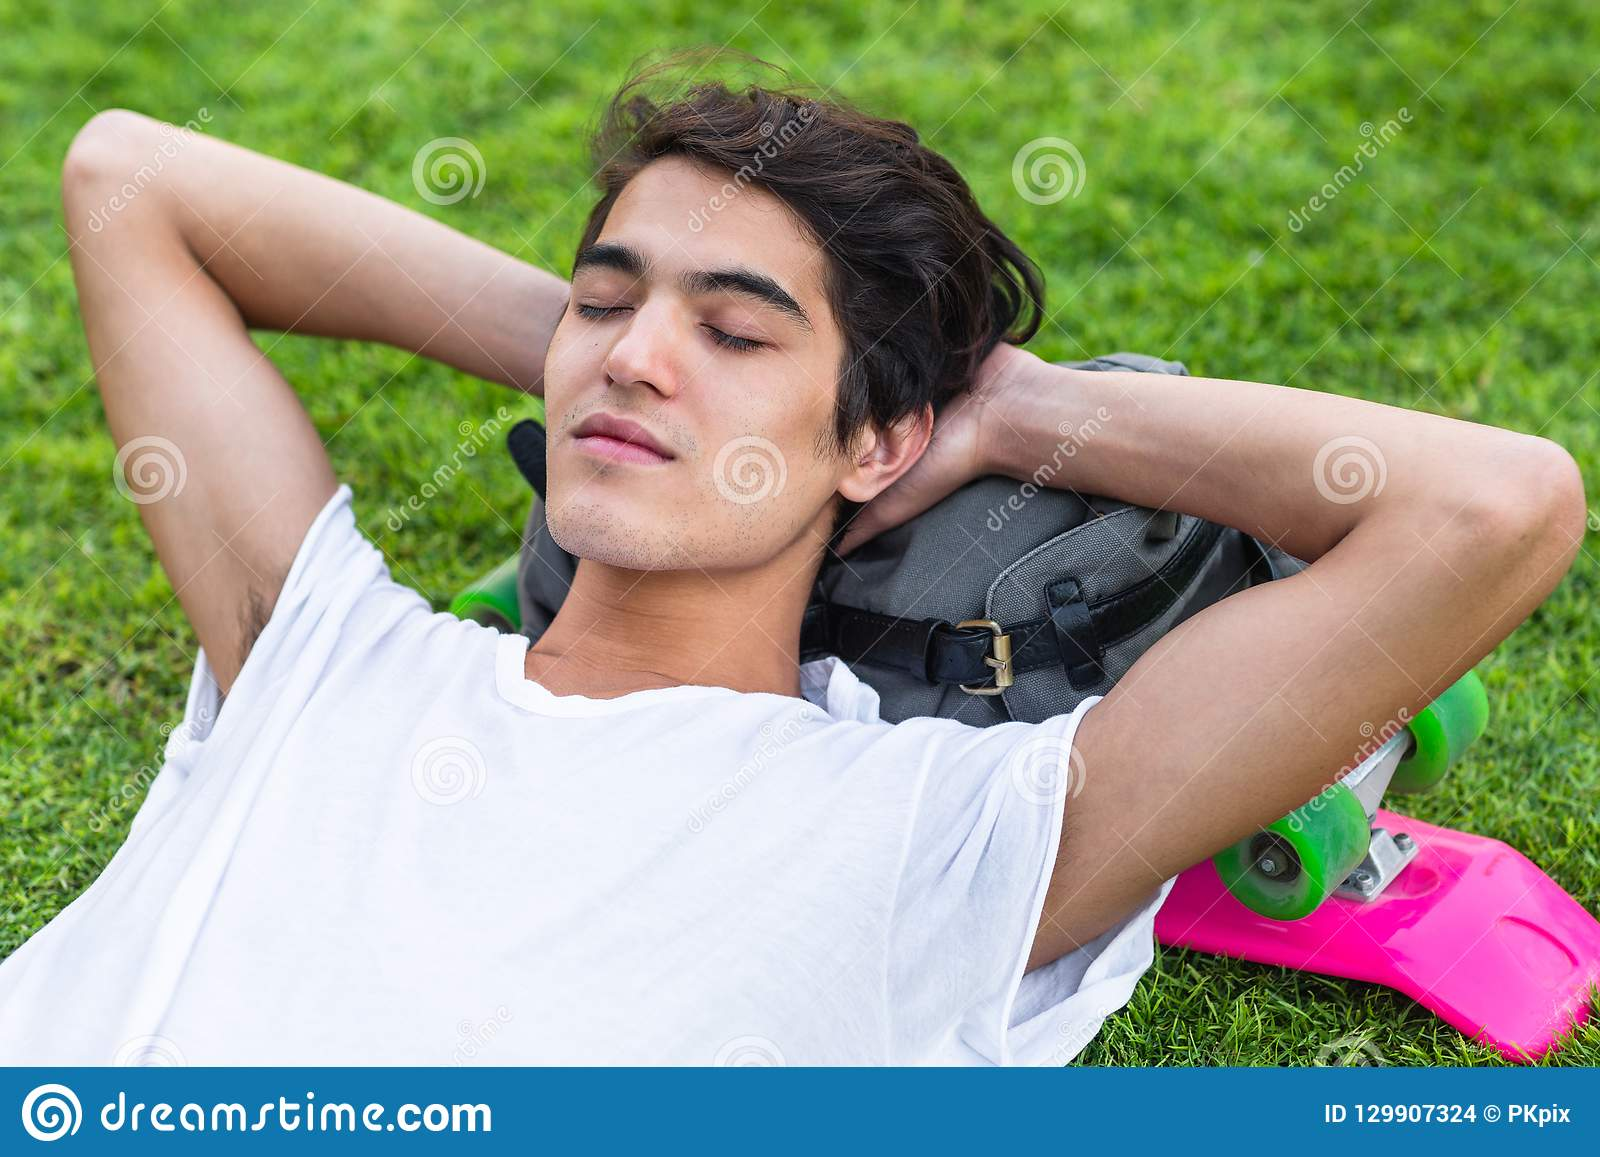 Young male skater resting on the grass with his eyes closed.